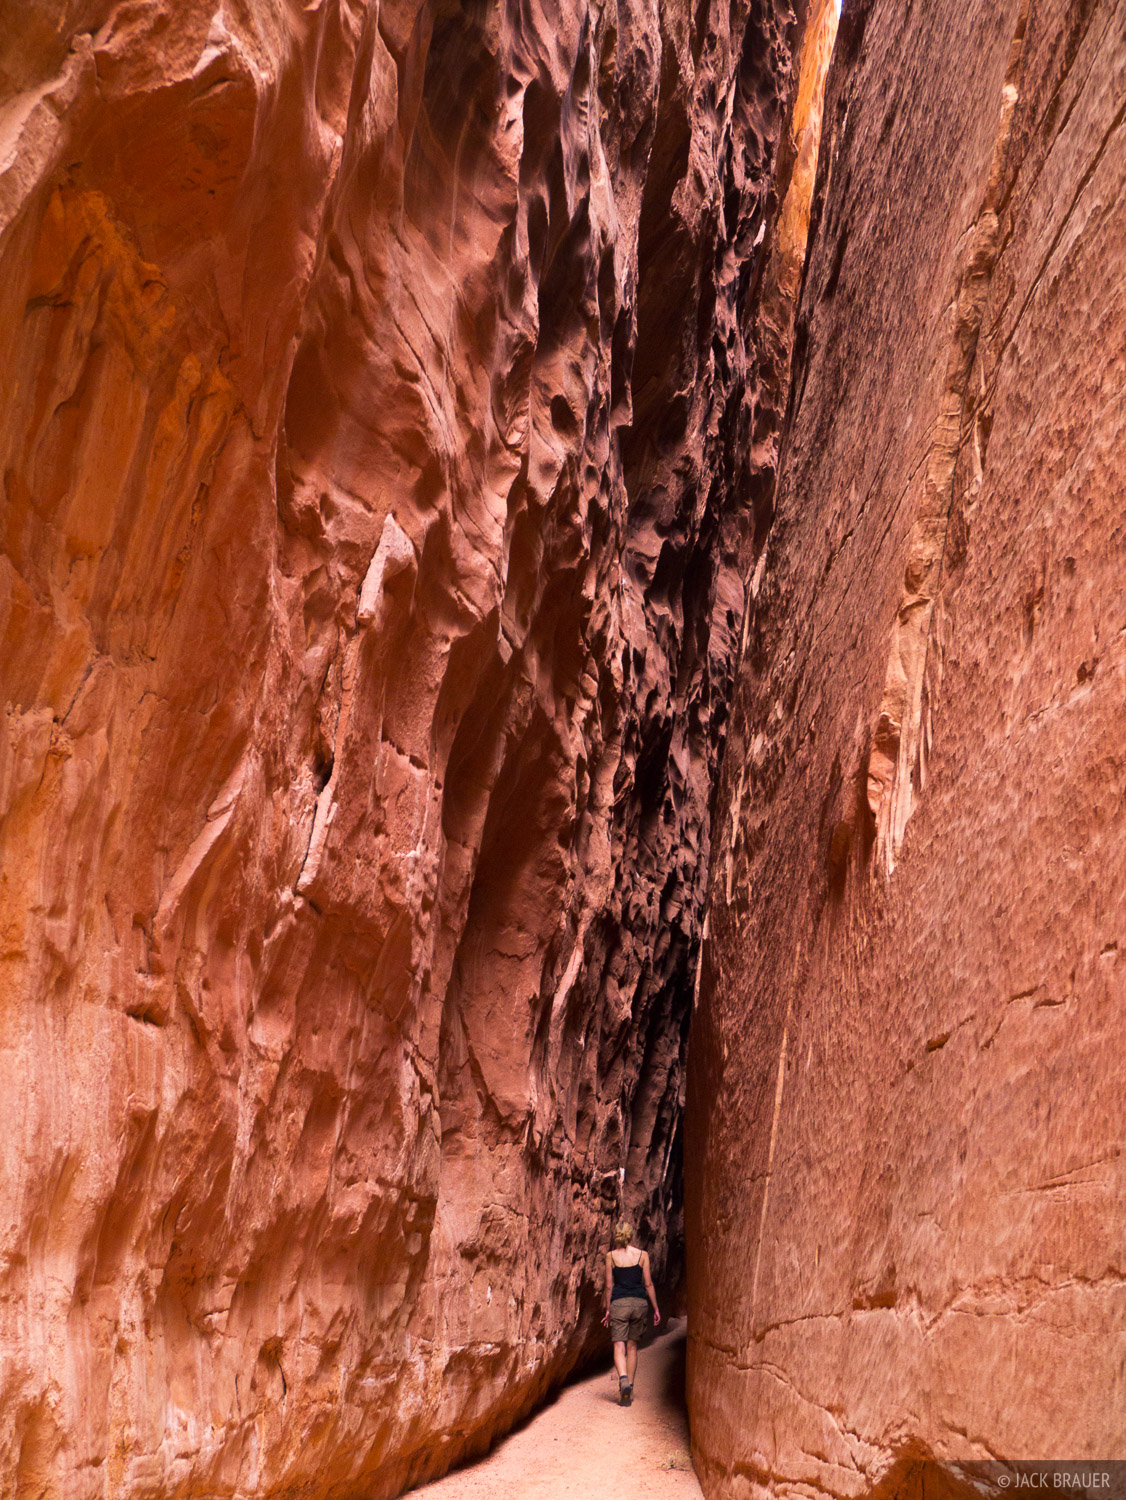 Robbers Roost Canyon, Utah, March, hiking, slot, photo